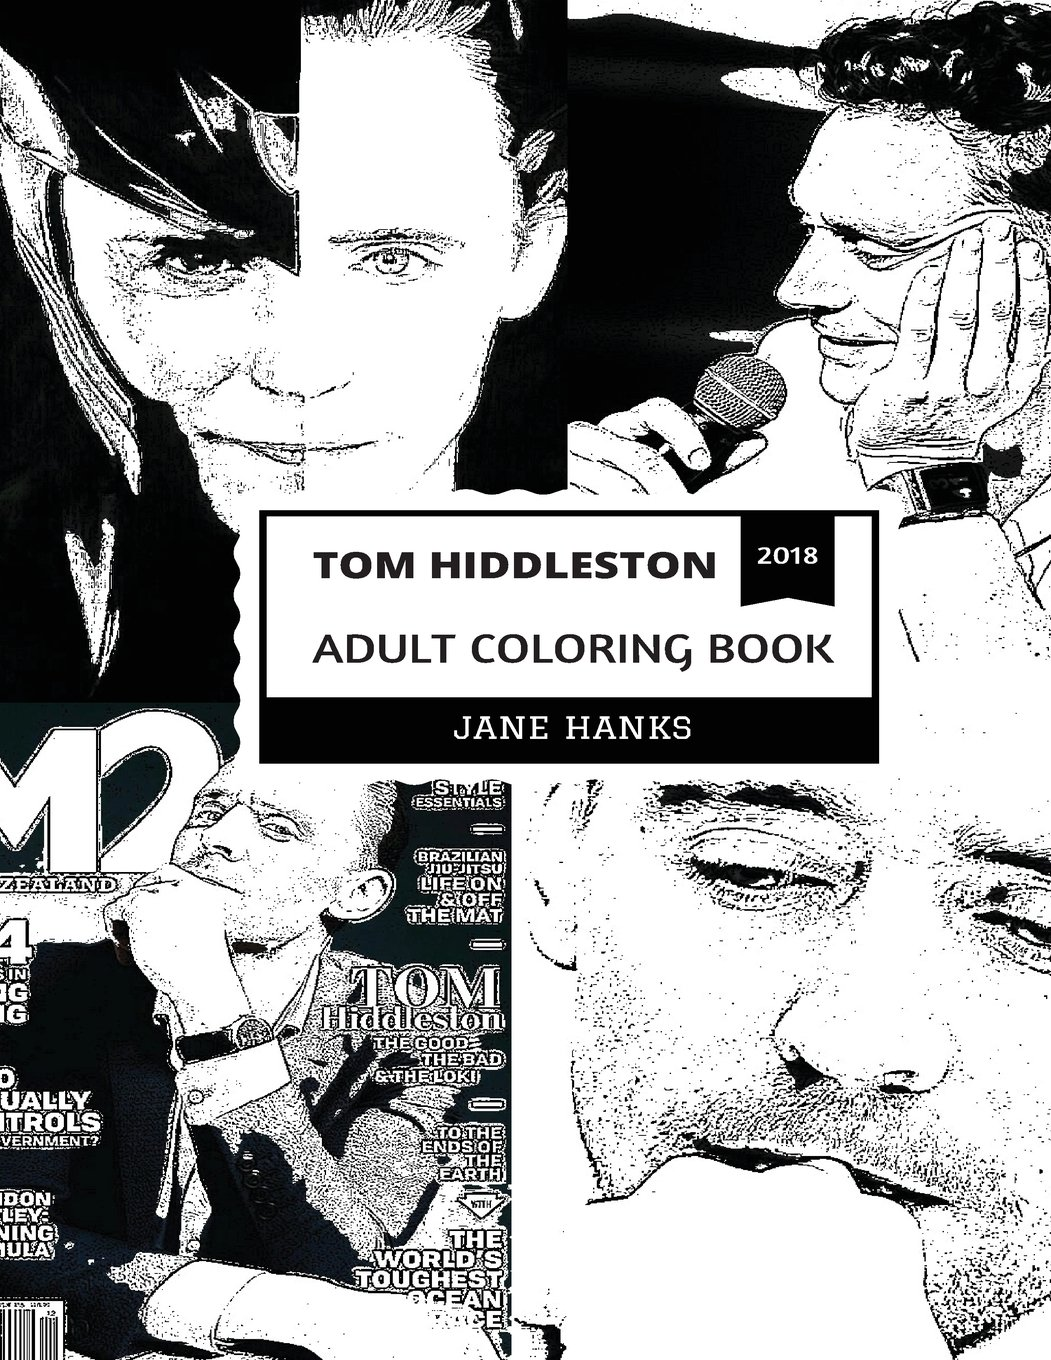 Tom Hiddleston Adult Coloring Book Loki From Marvel